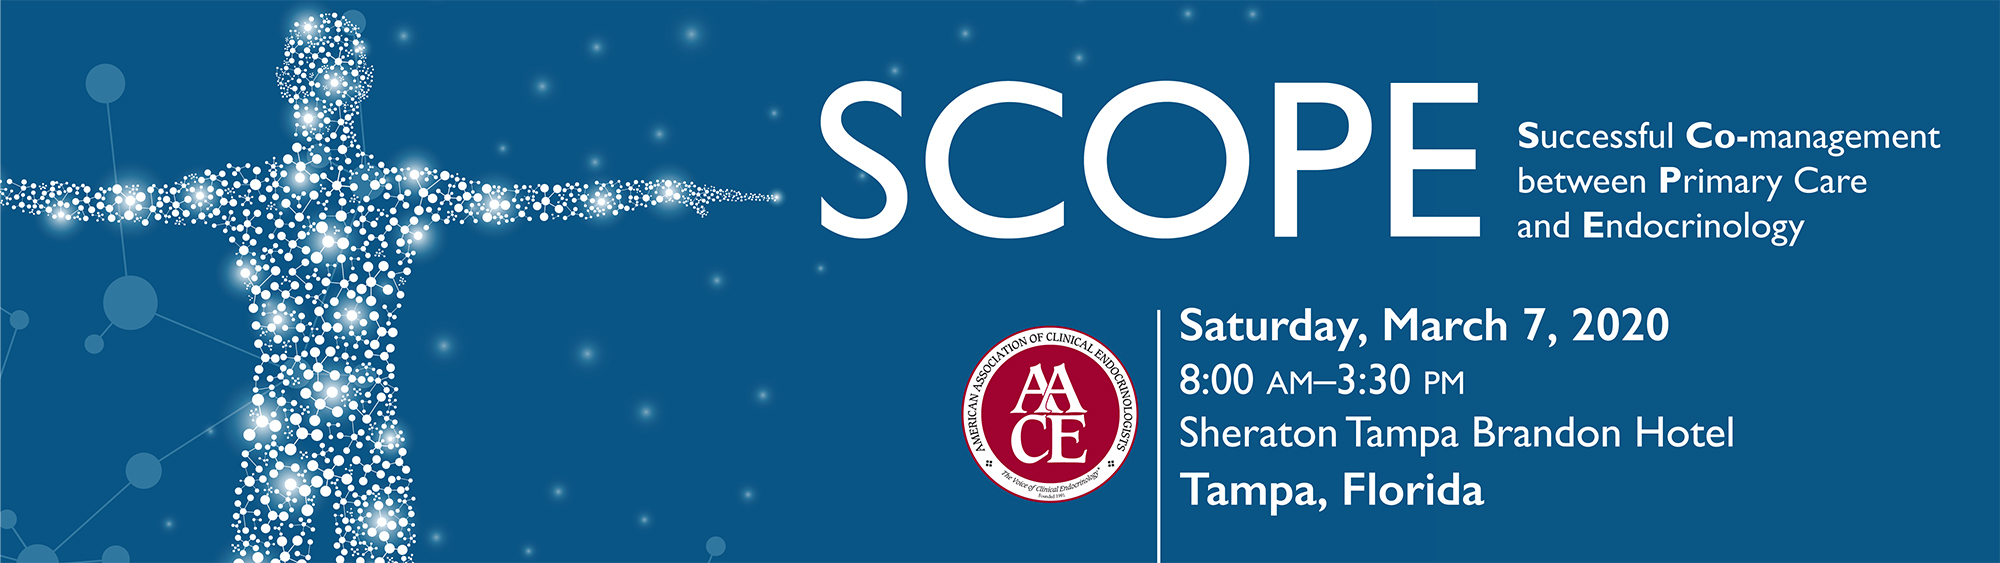 SCOPE: Successful CO-Management between Primary Care and Endocrinology (TAMPA)